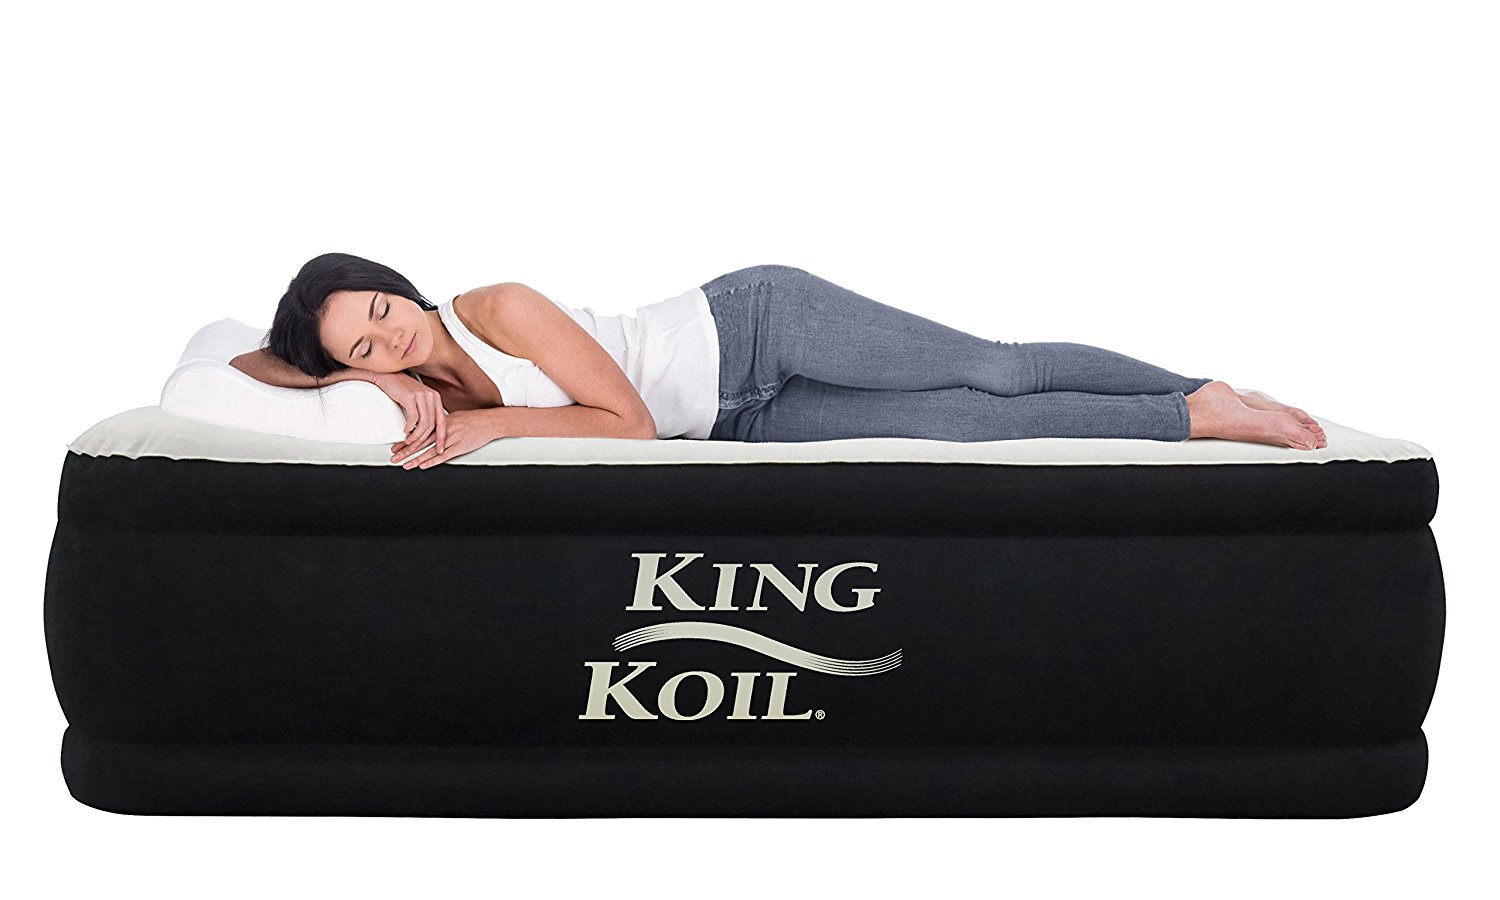 King Koil Luxury Raised Air Mattress